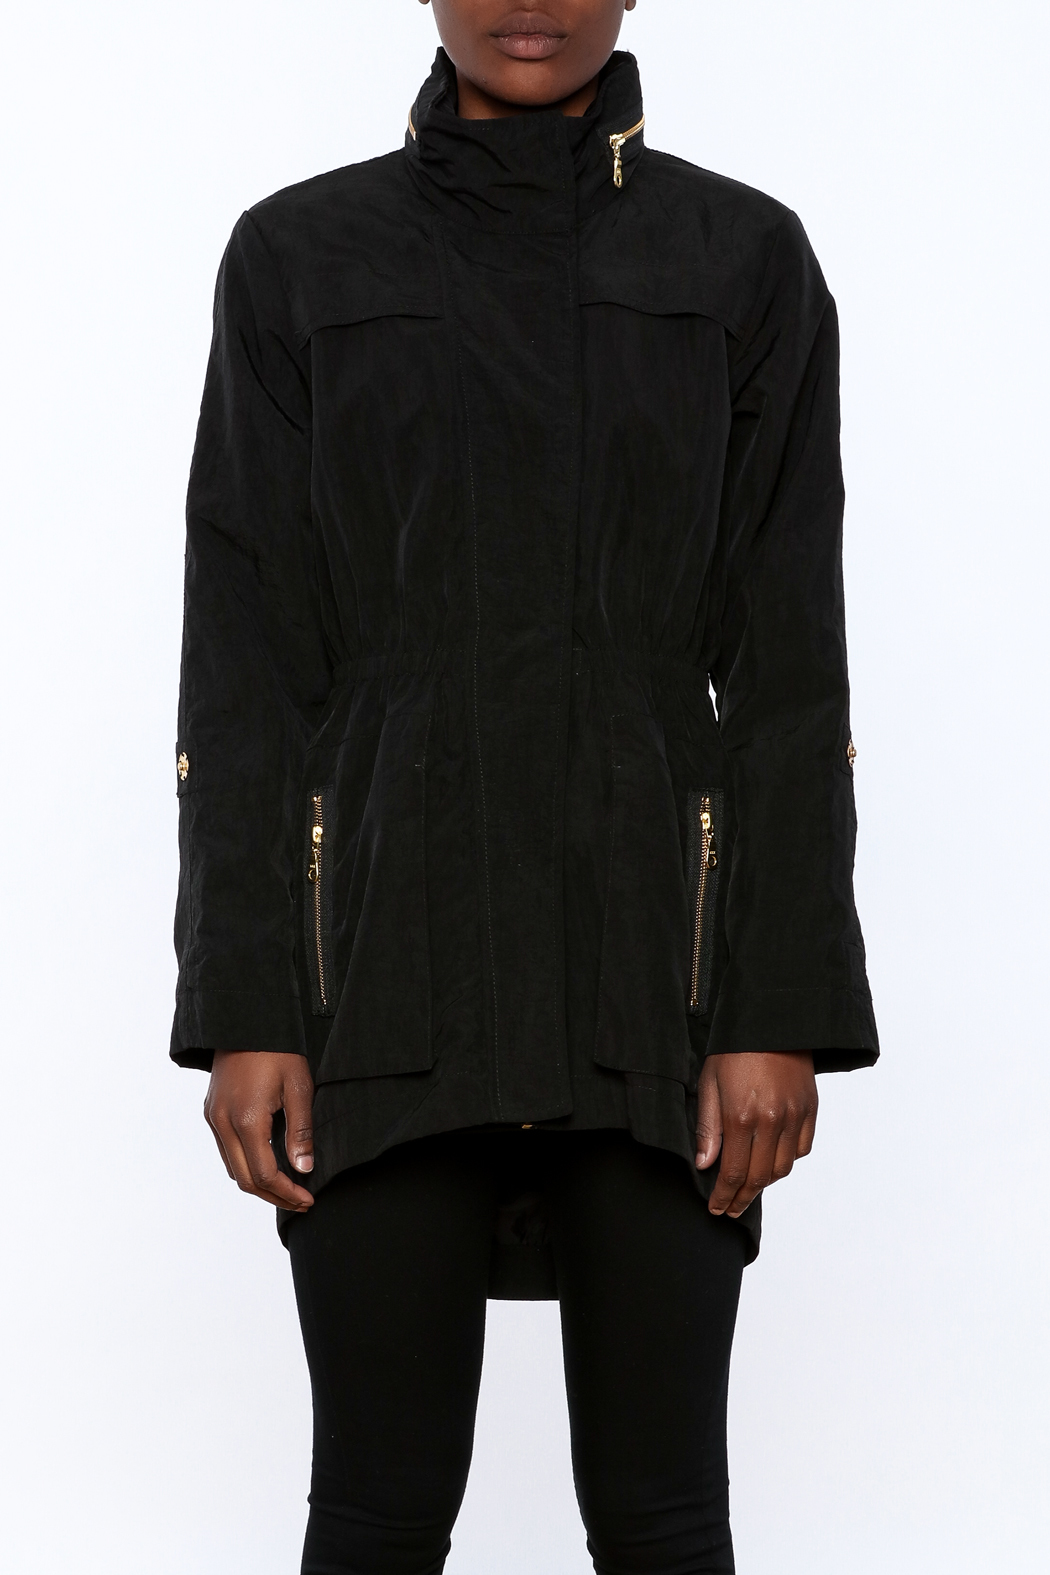 Tart Collections Black Long Jacket - Side Cropped Image